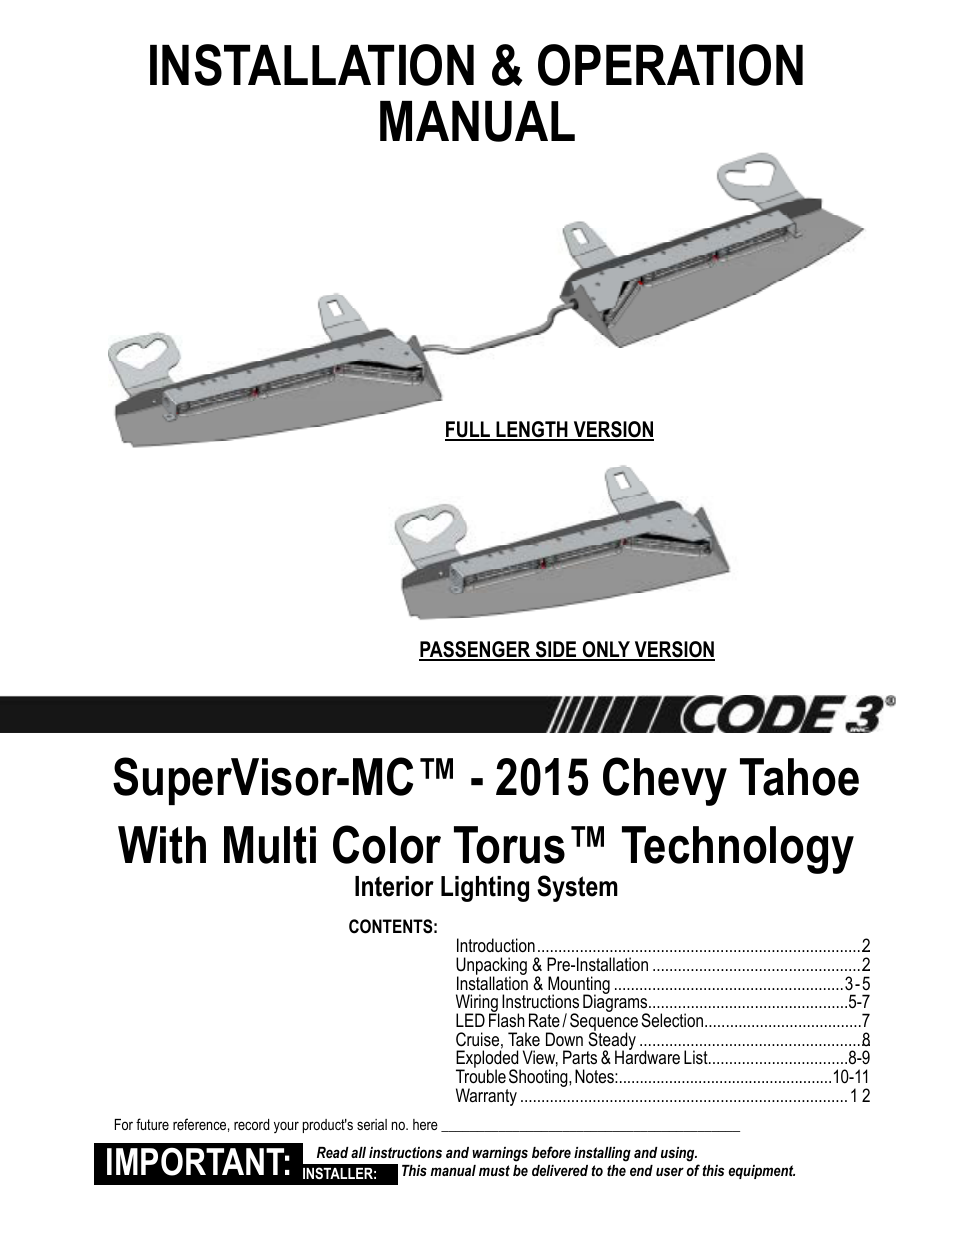 code 3 mc supervisor tahoe user manual